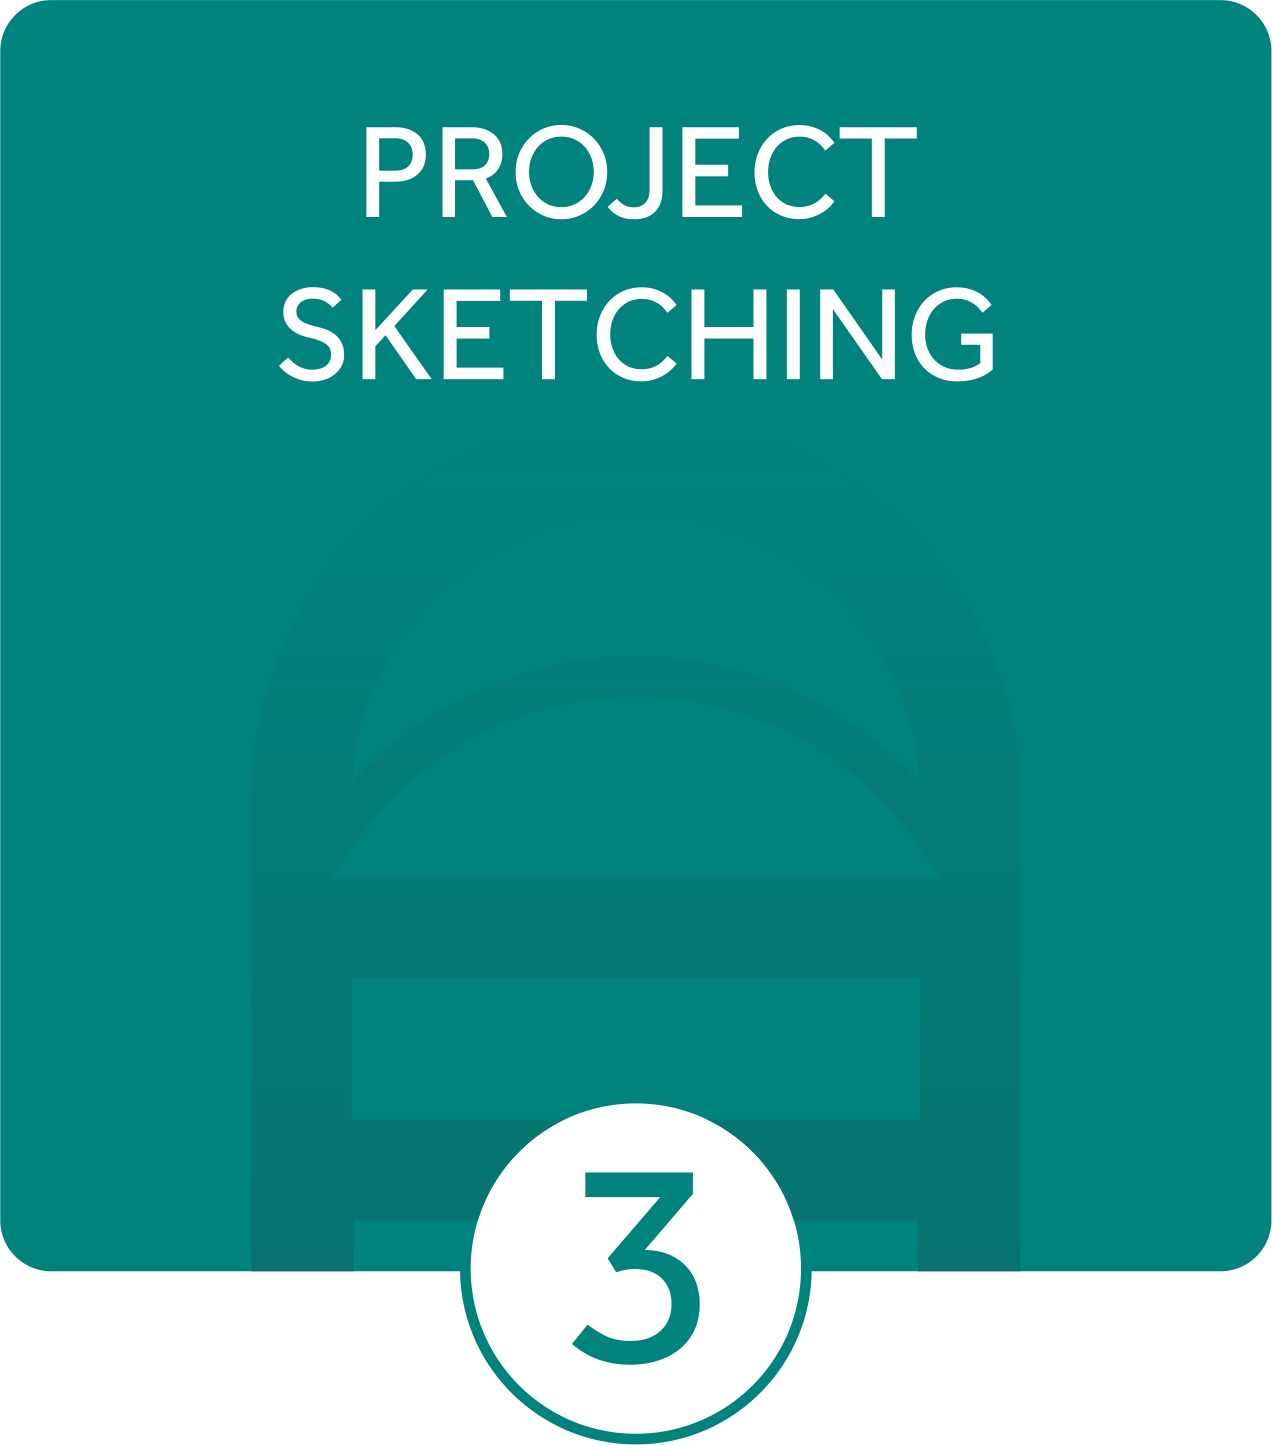 3.Project sketching